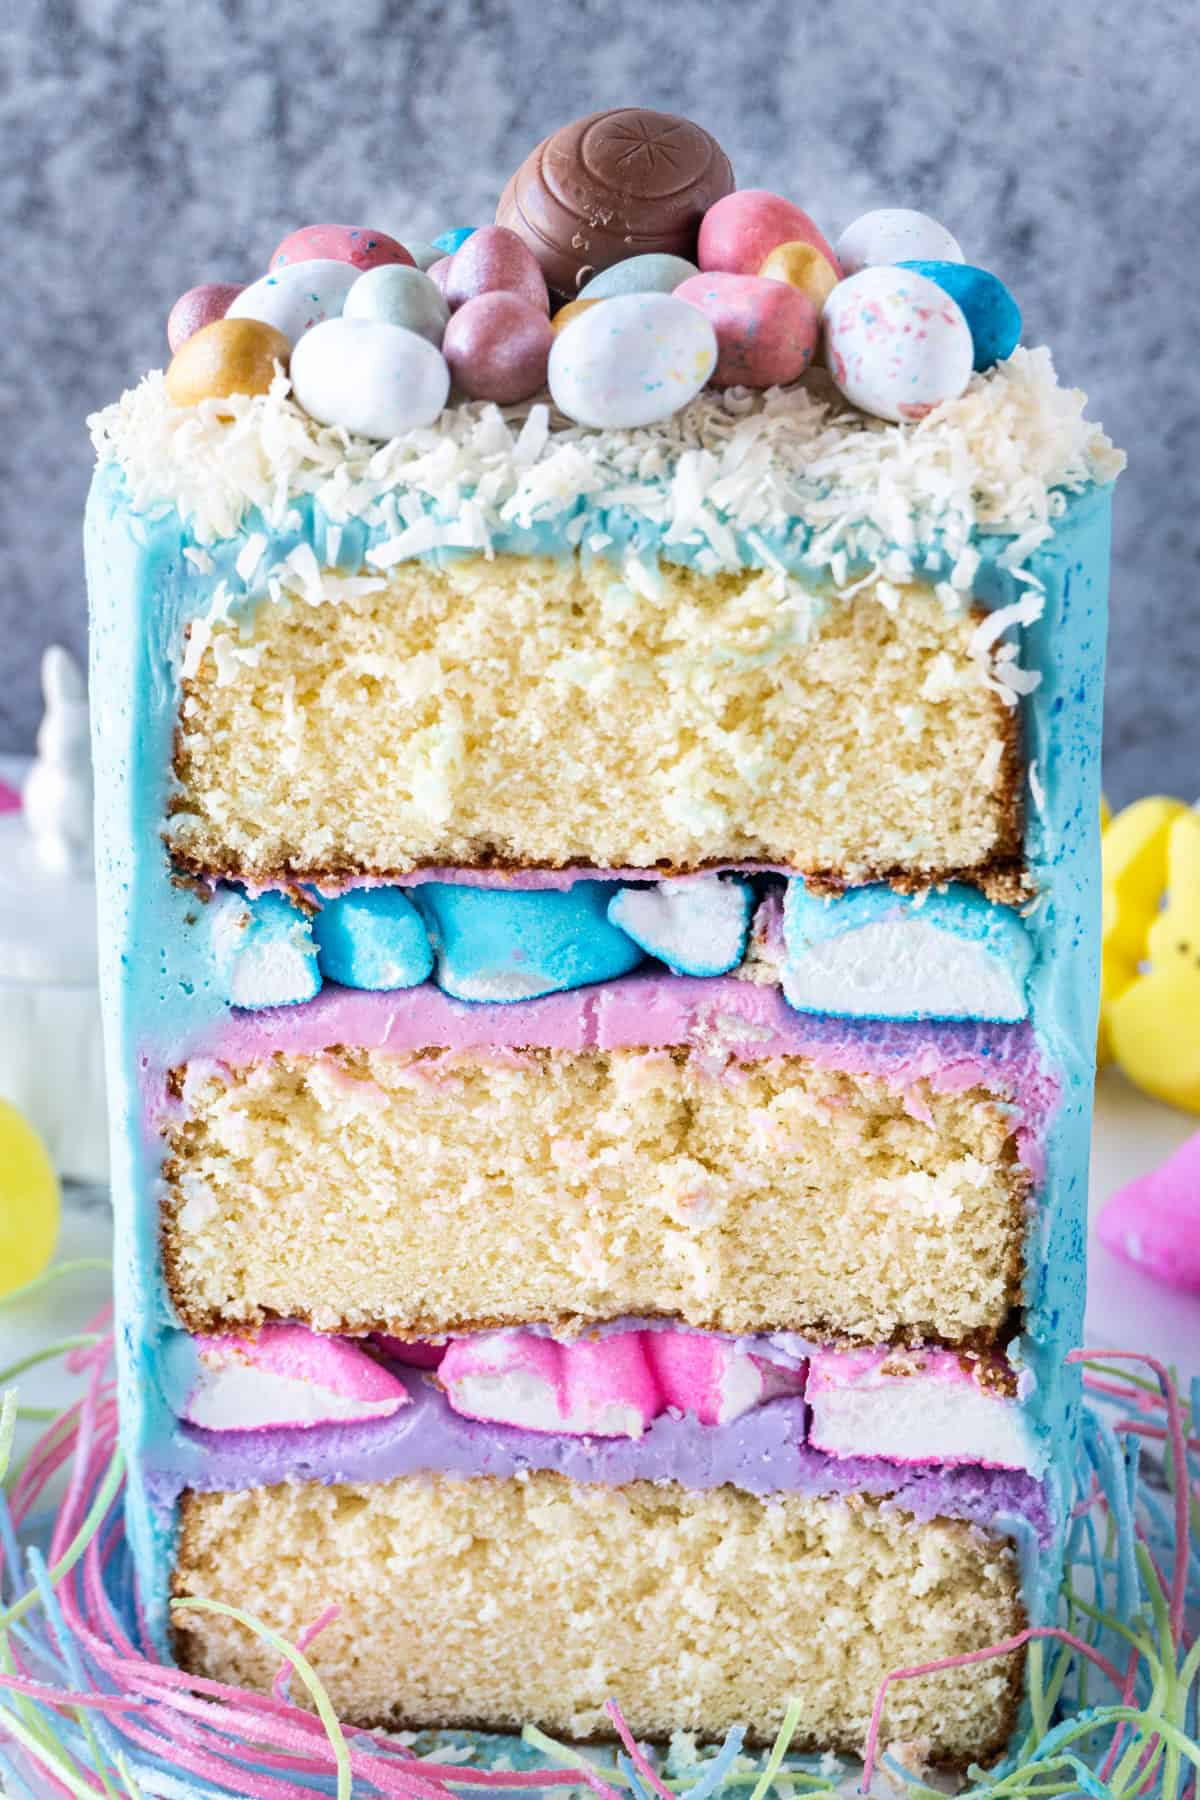 Cross section of the Easter Cake showing all the layers